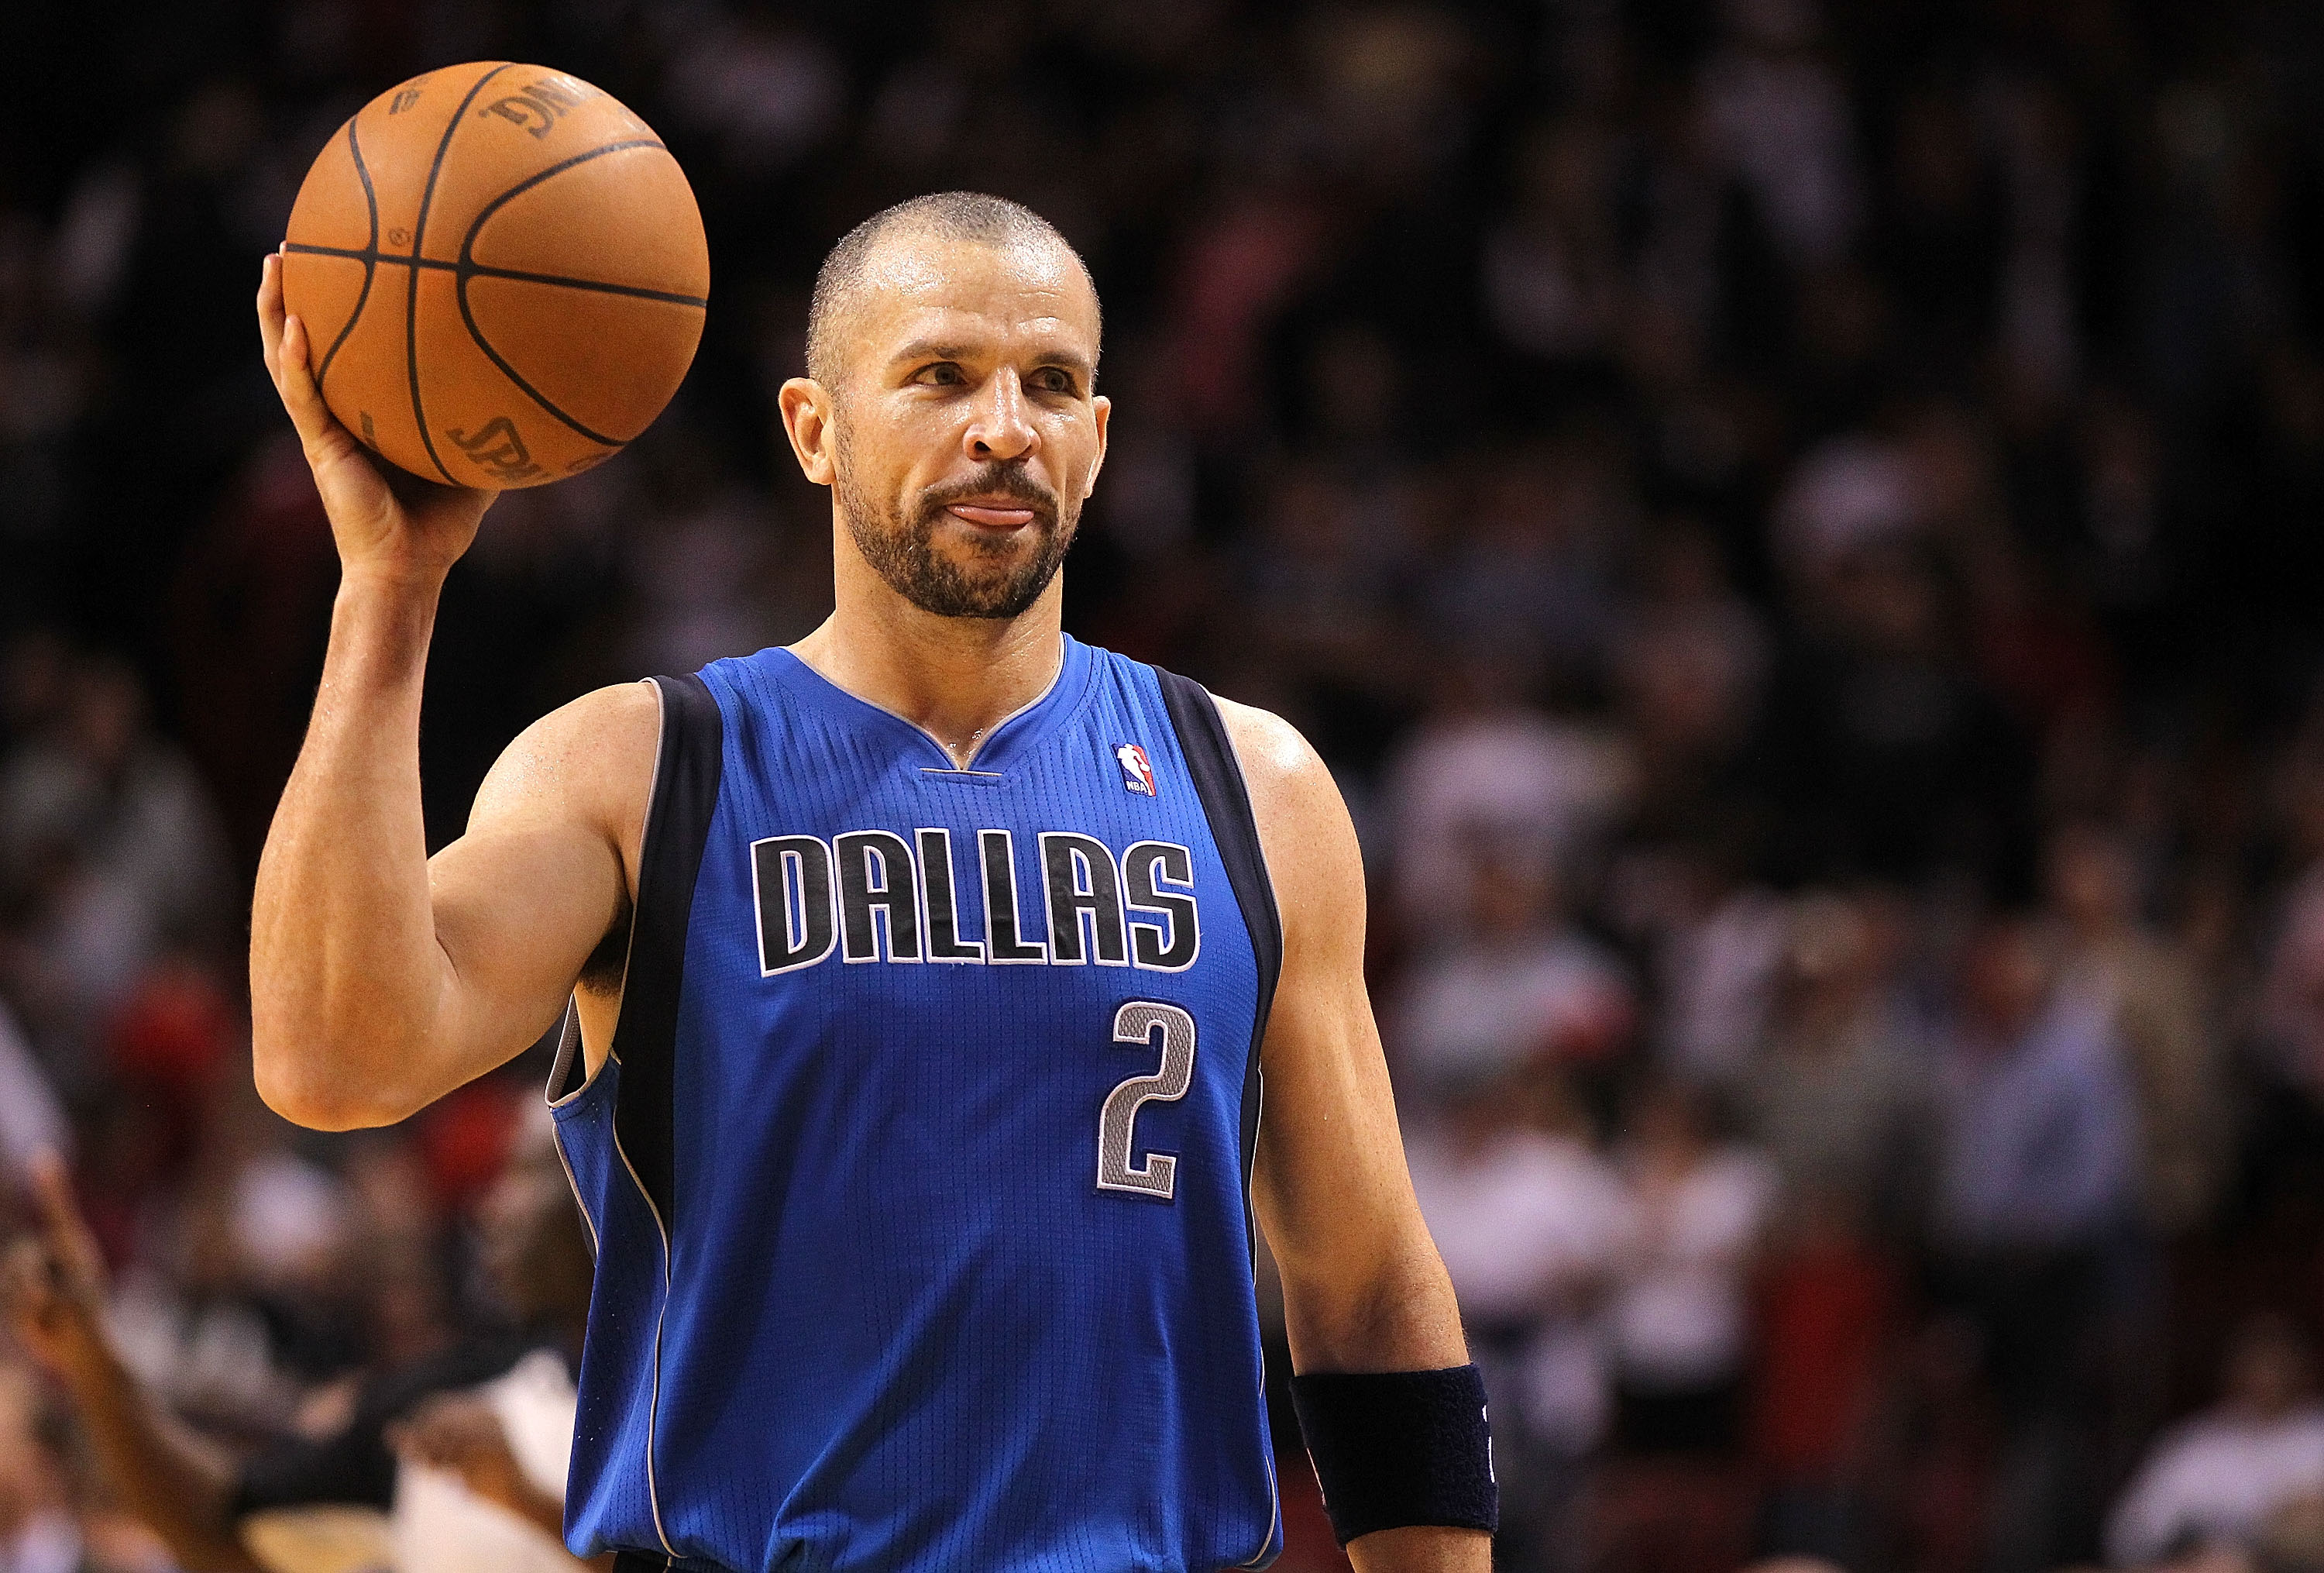 MIAMI, FL - DECEMBER 20:  Jason Kidd #2 of the Dallas Mavericks passes the ball during a game against the Miami Heat at American Airlines Arena on December 20, 2010 in Miami, Florida. NOTE TO USER: User expressly acknowledges and agrees that, by downloadi